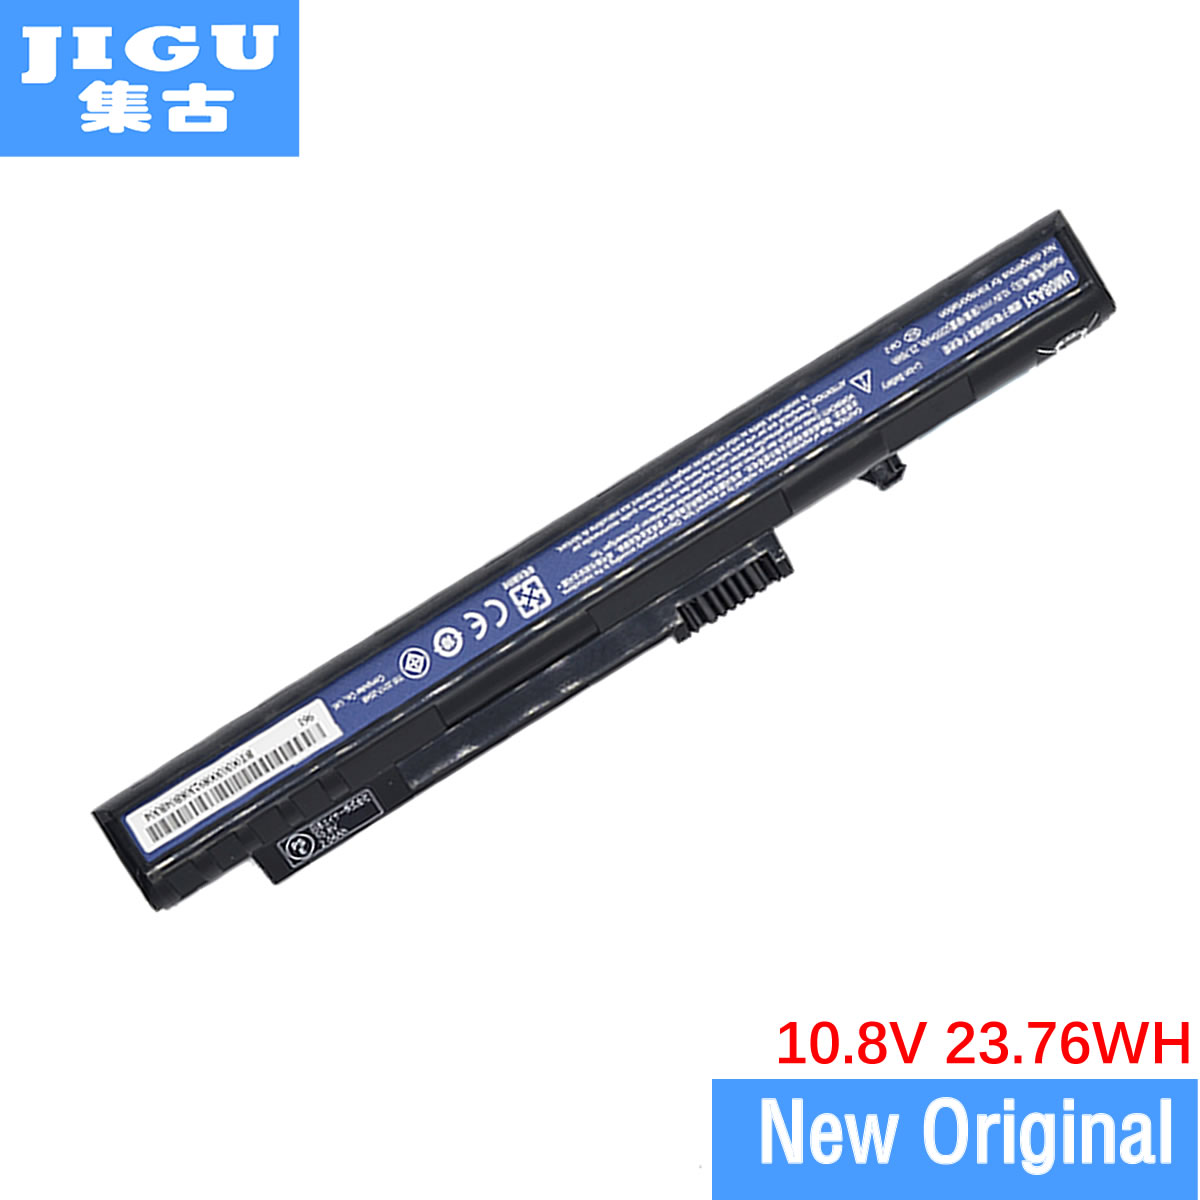 JIGU Original Laptop <font><b>Battery</b></font> For ACER For ASPIRE ONE 10.1' 8.9' 571 A110 A150 D150 D250 P531 P531h ZG5 <font><b>10.8V</b></font> <font><b>2200mah</b></font> image